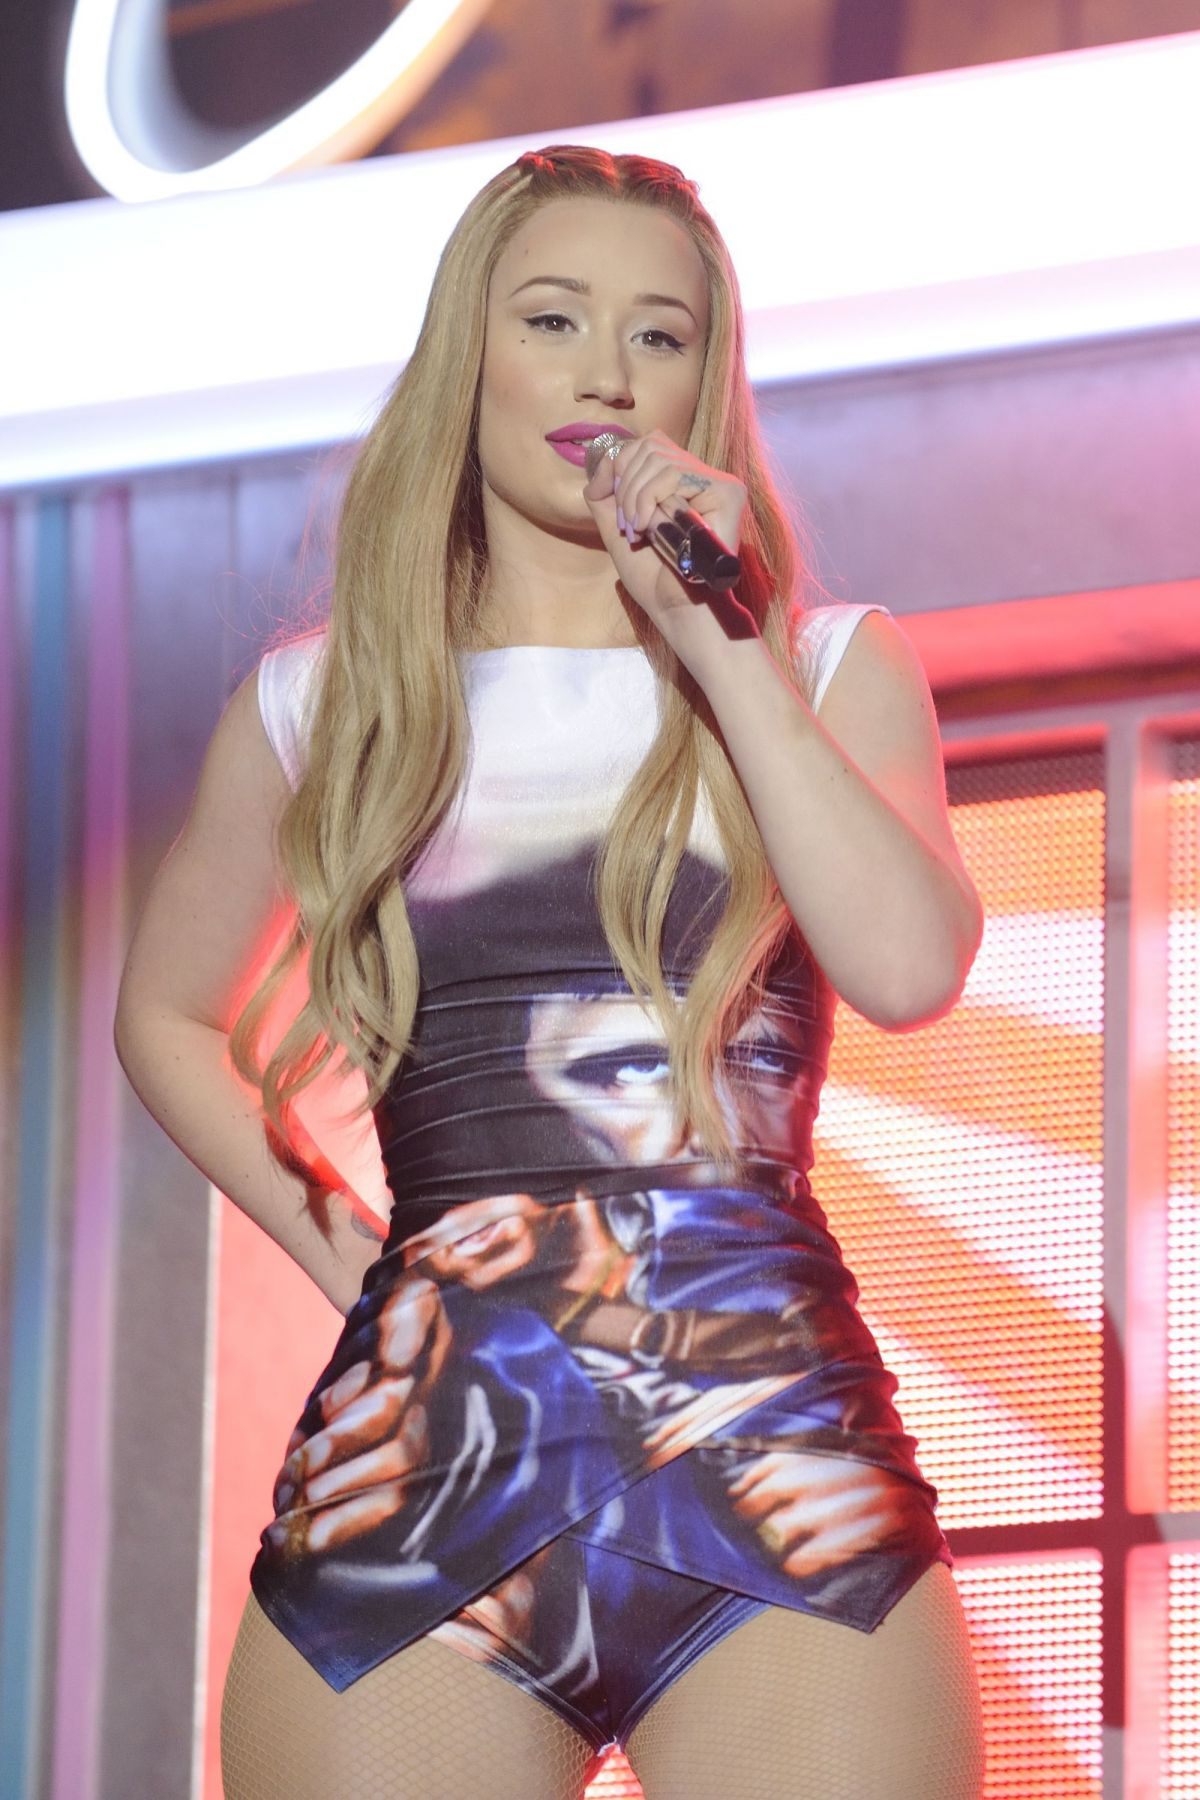 The New French Teenage Fashion Collection Une Fille From: IGGY AZALEA Performs At Her The New Classic Tour In